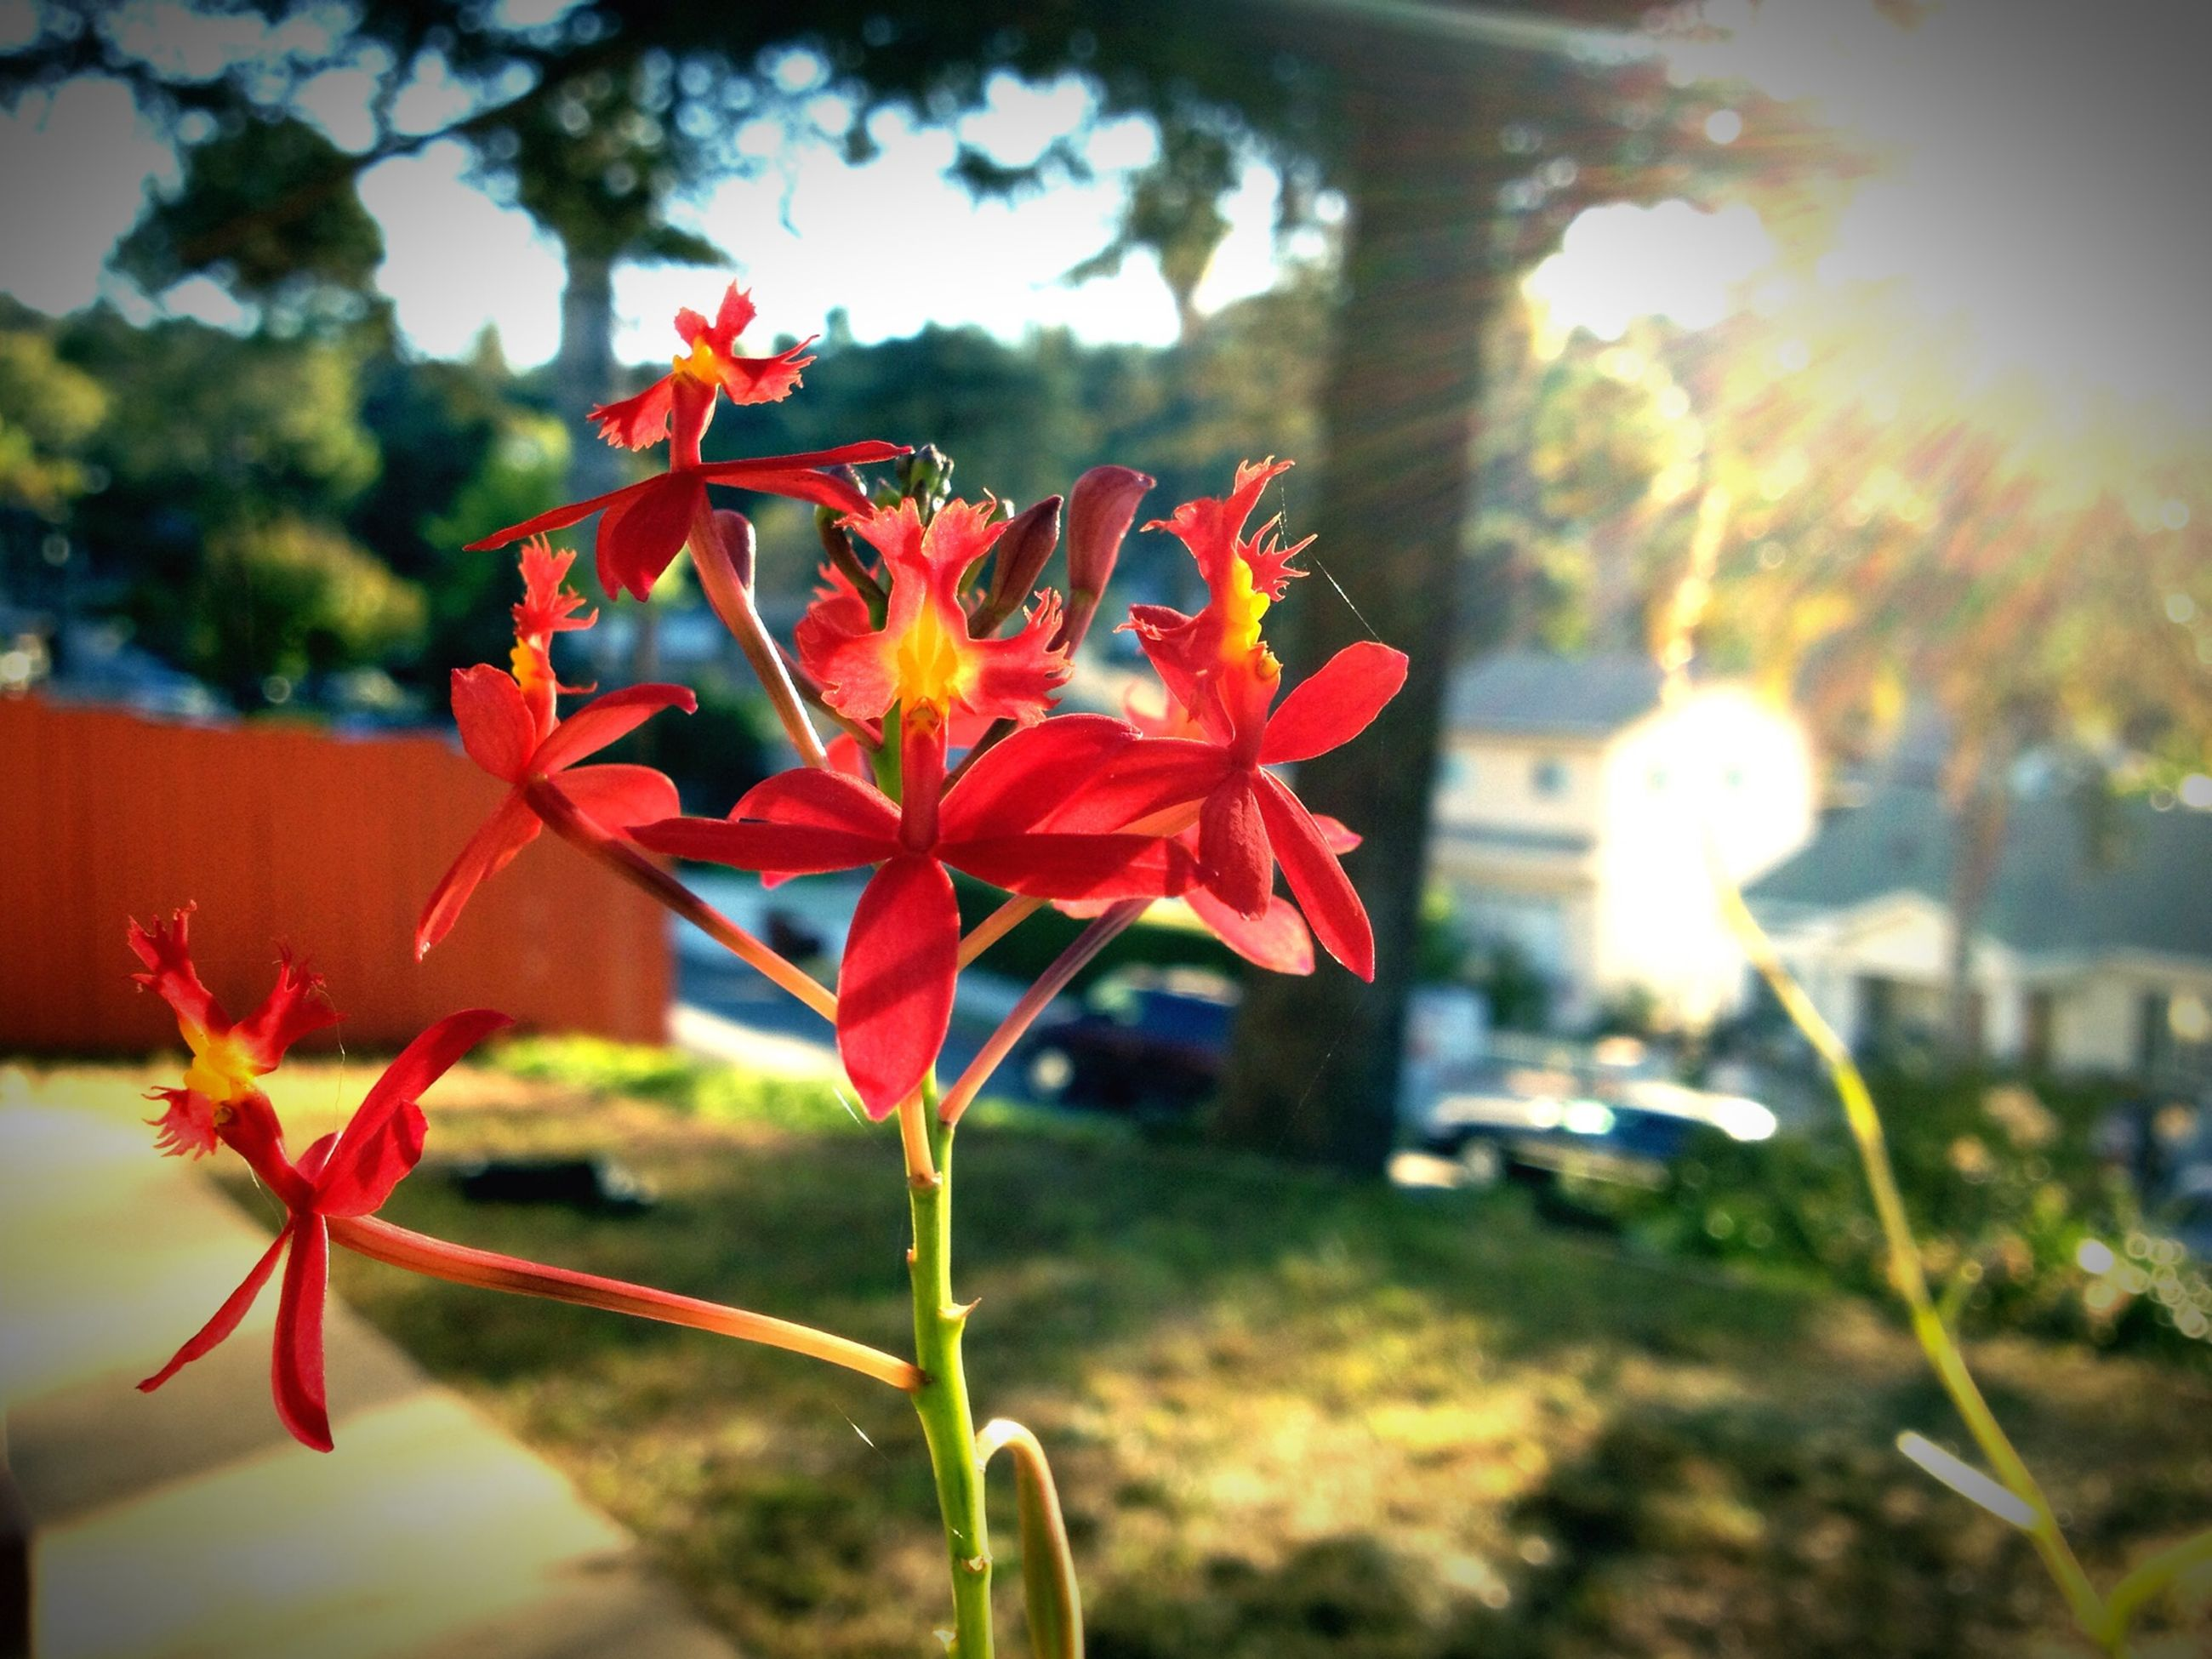 flower, petal, fragility, freshness, growth, focus on foreground, flower head, beauty in nature, red, close-up, plant, blooming, nature, stem, orange color, in bloom, sunlight, field, selective focus, blossom